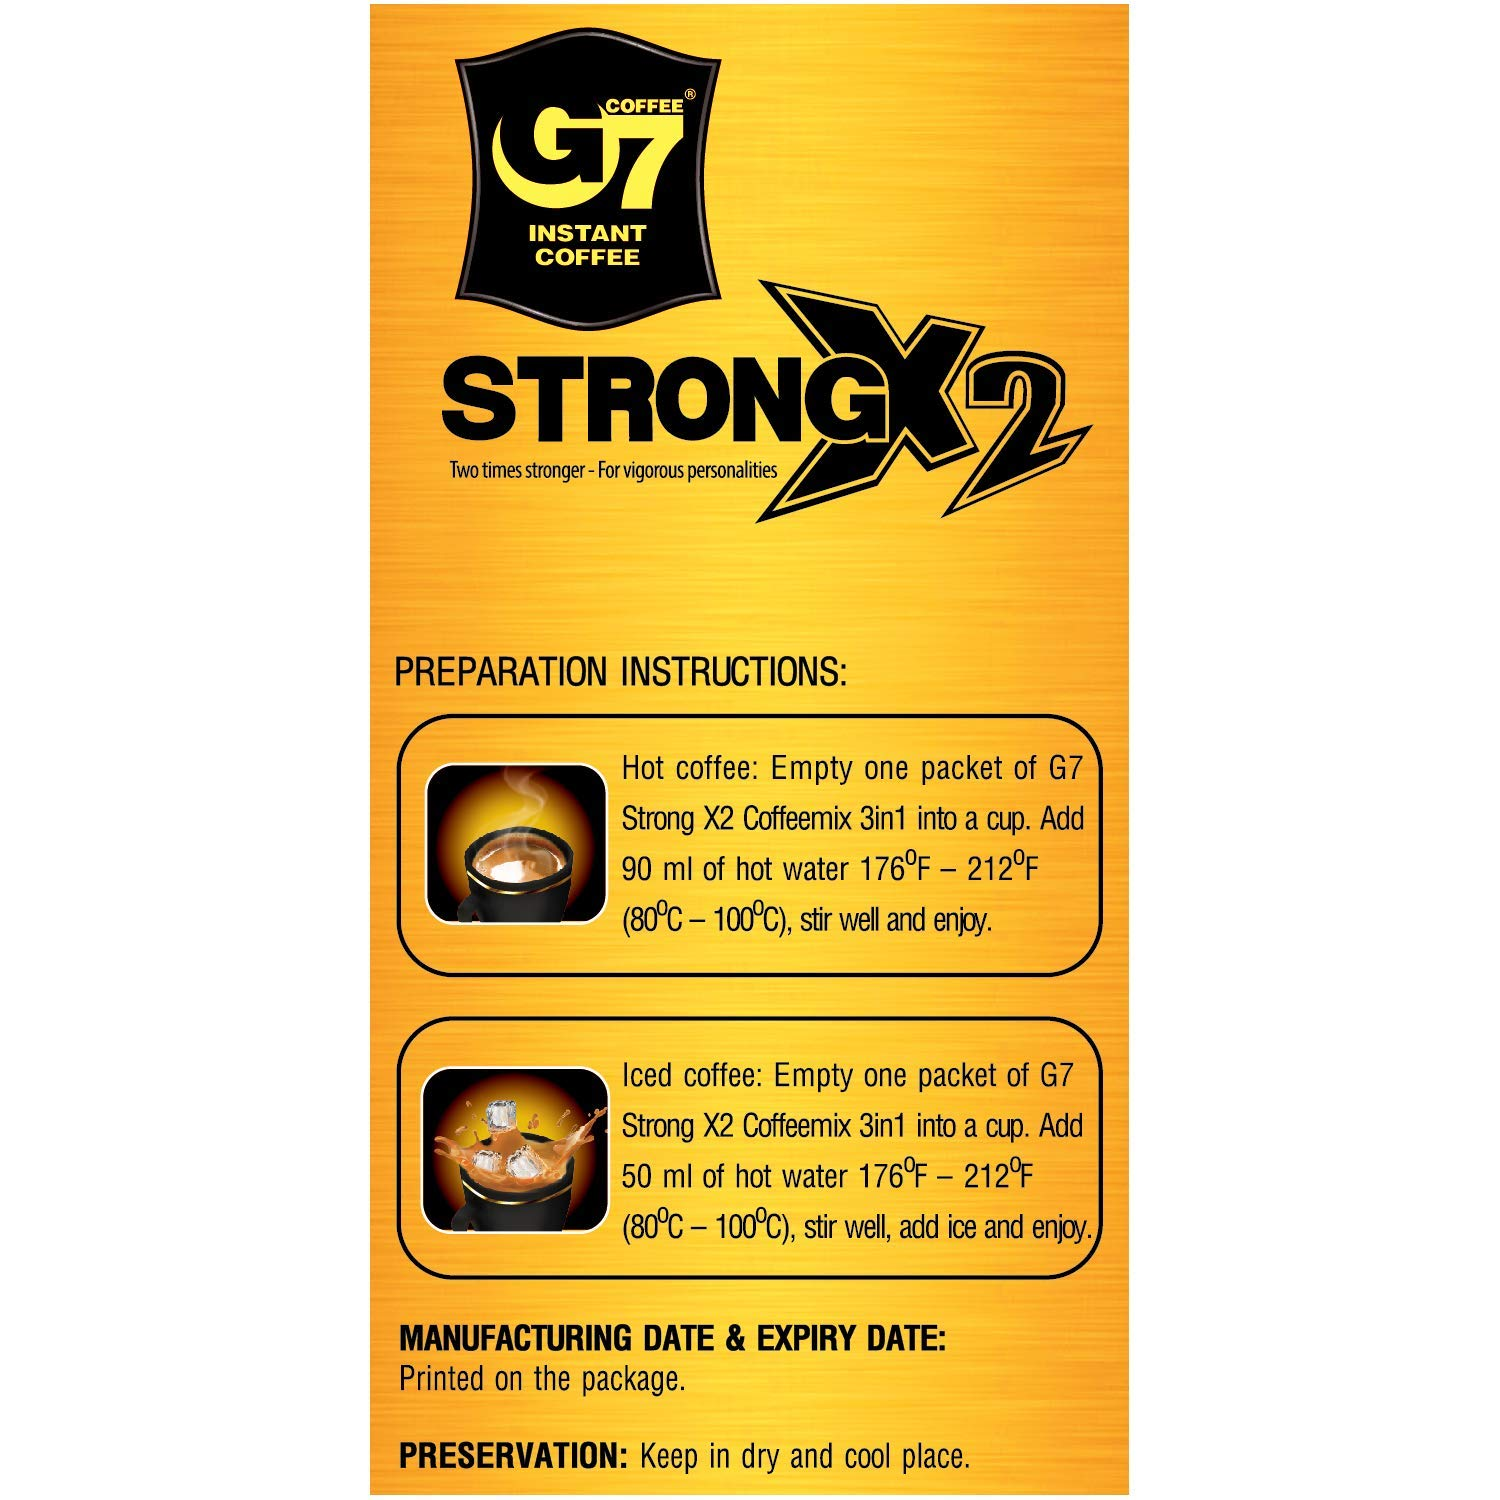 Trung Nguyen G7 Instant Coffee Strong X2 600 G 24 Pk